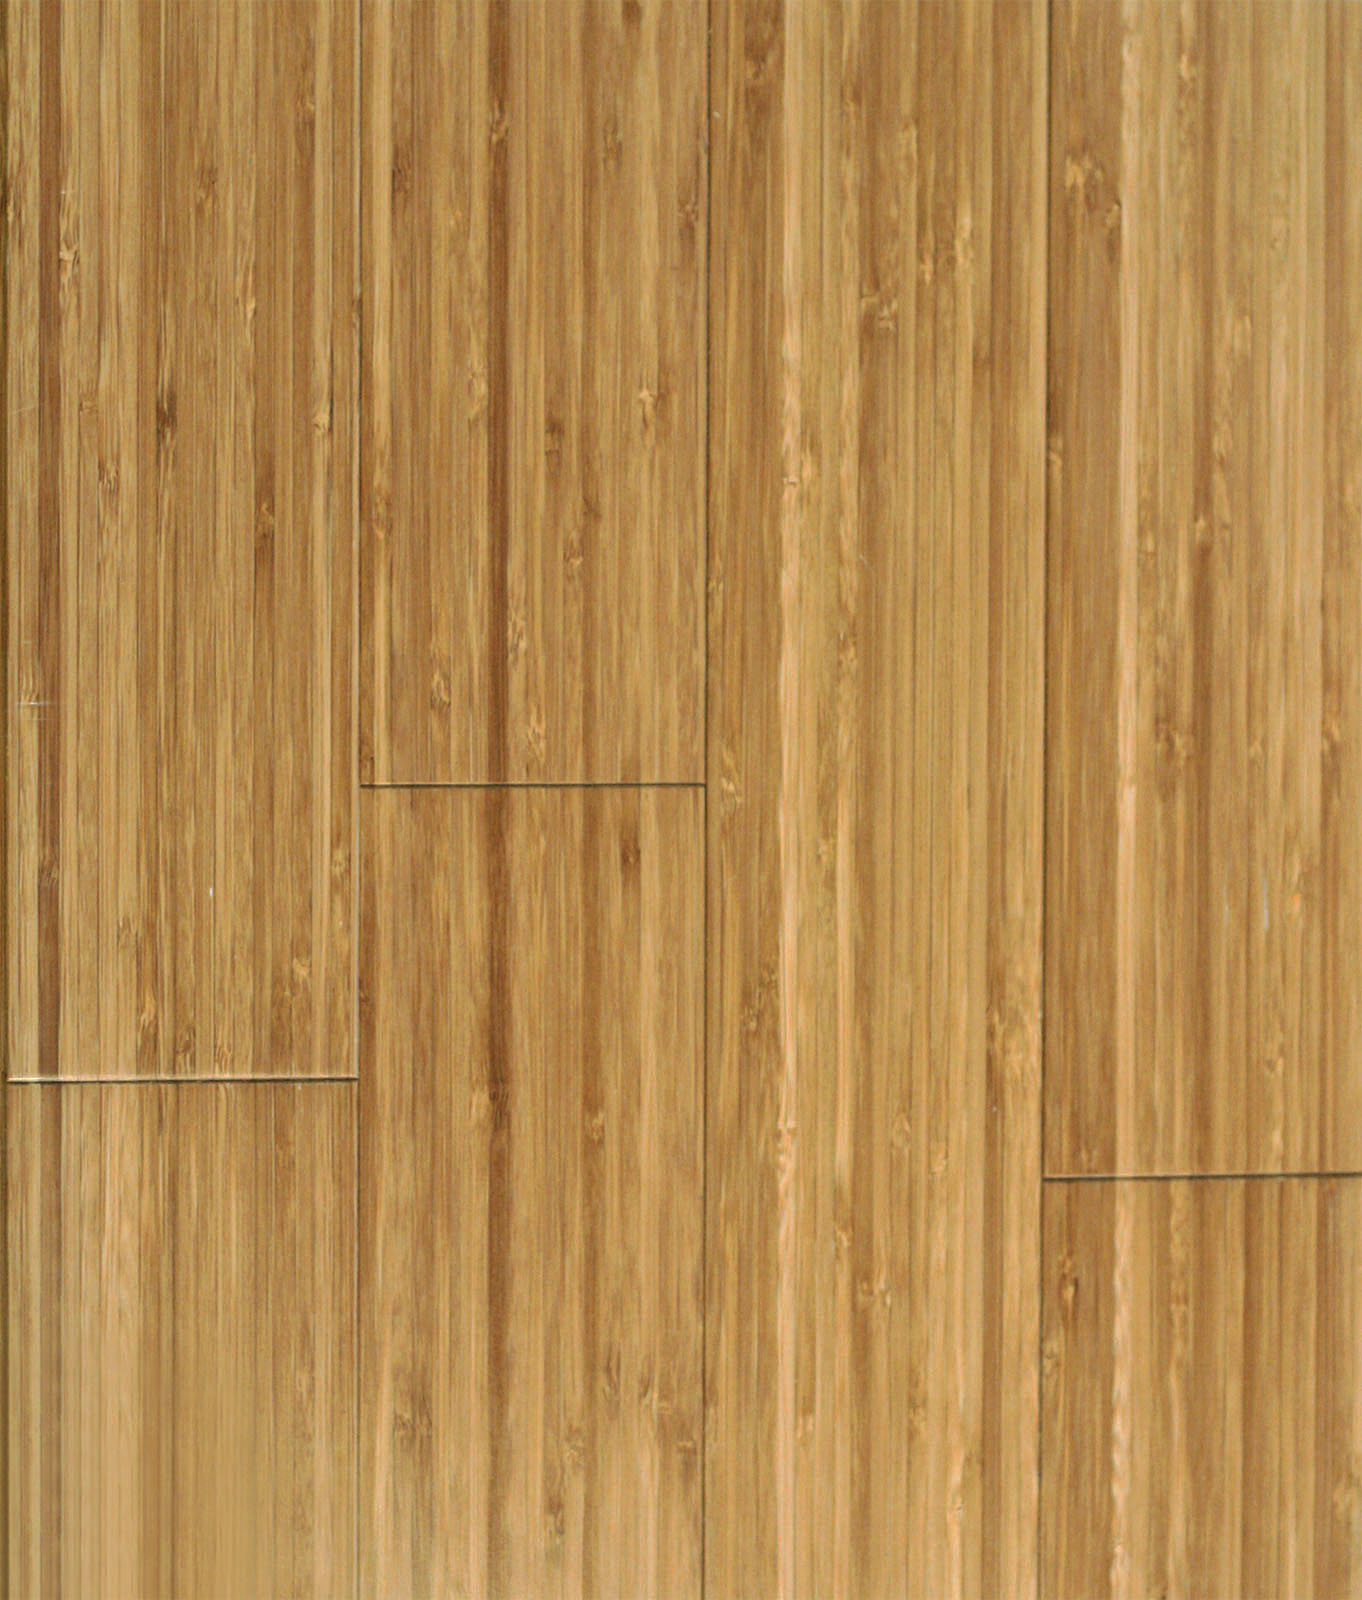 Bamboo grove photo bamboo hardwood floors for Hardwood flooring